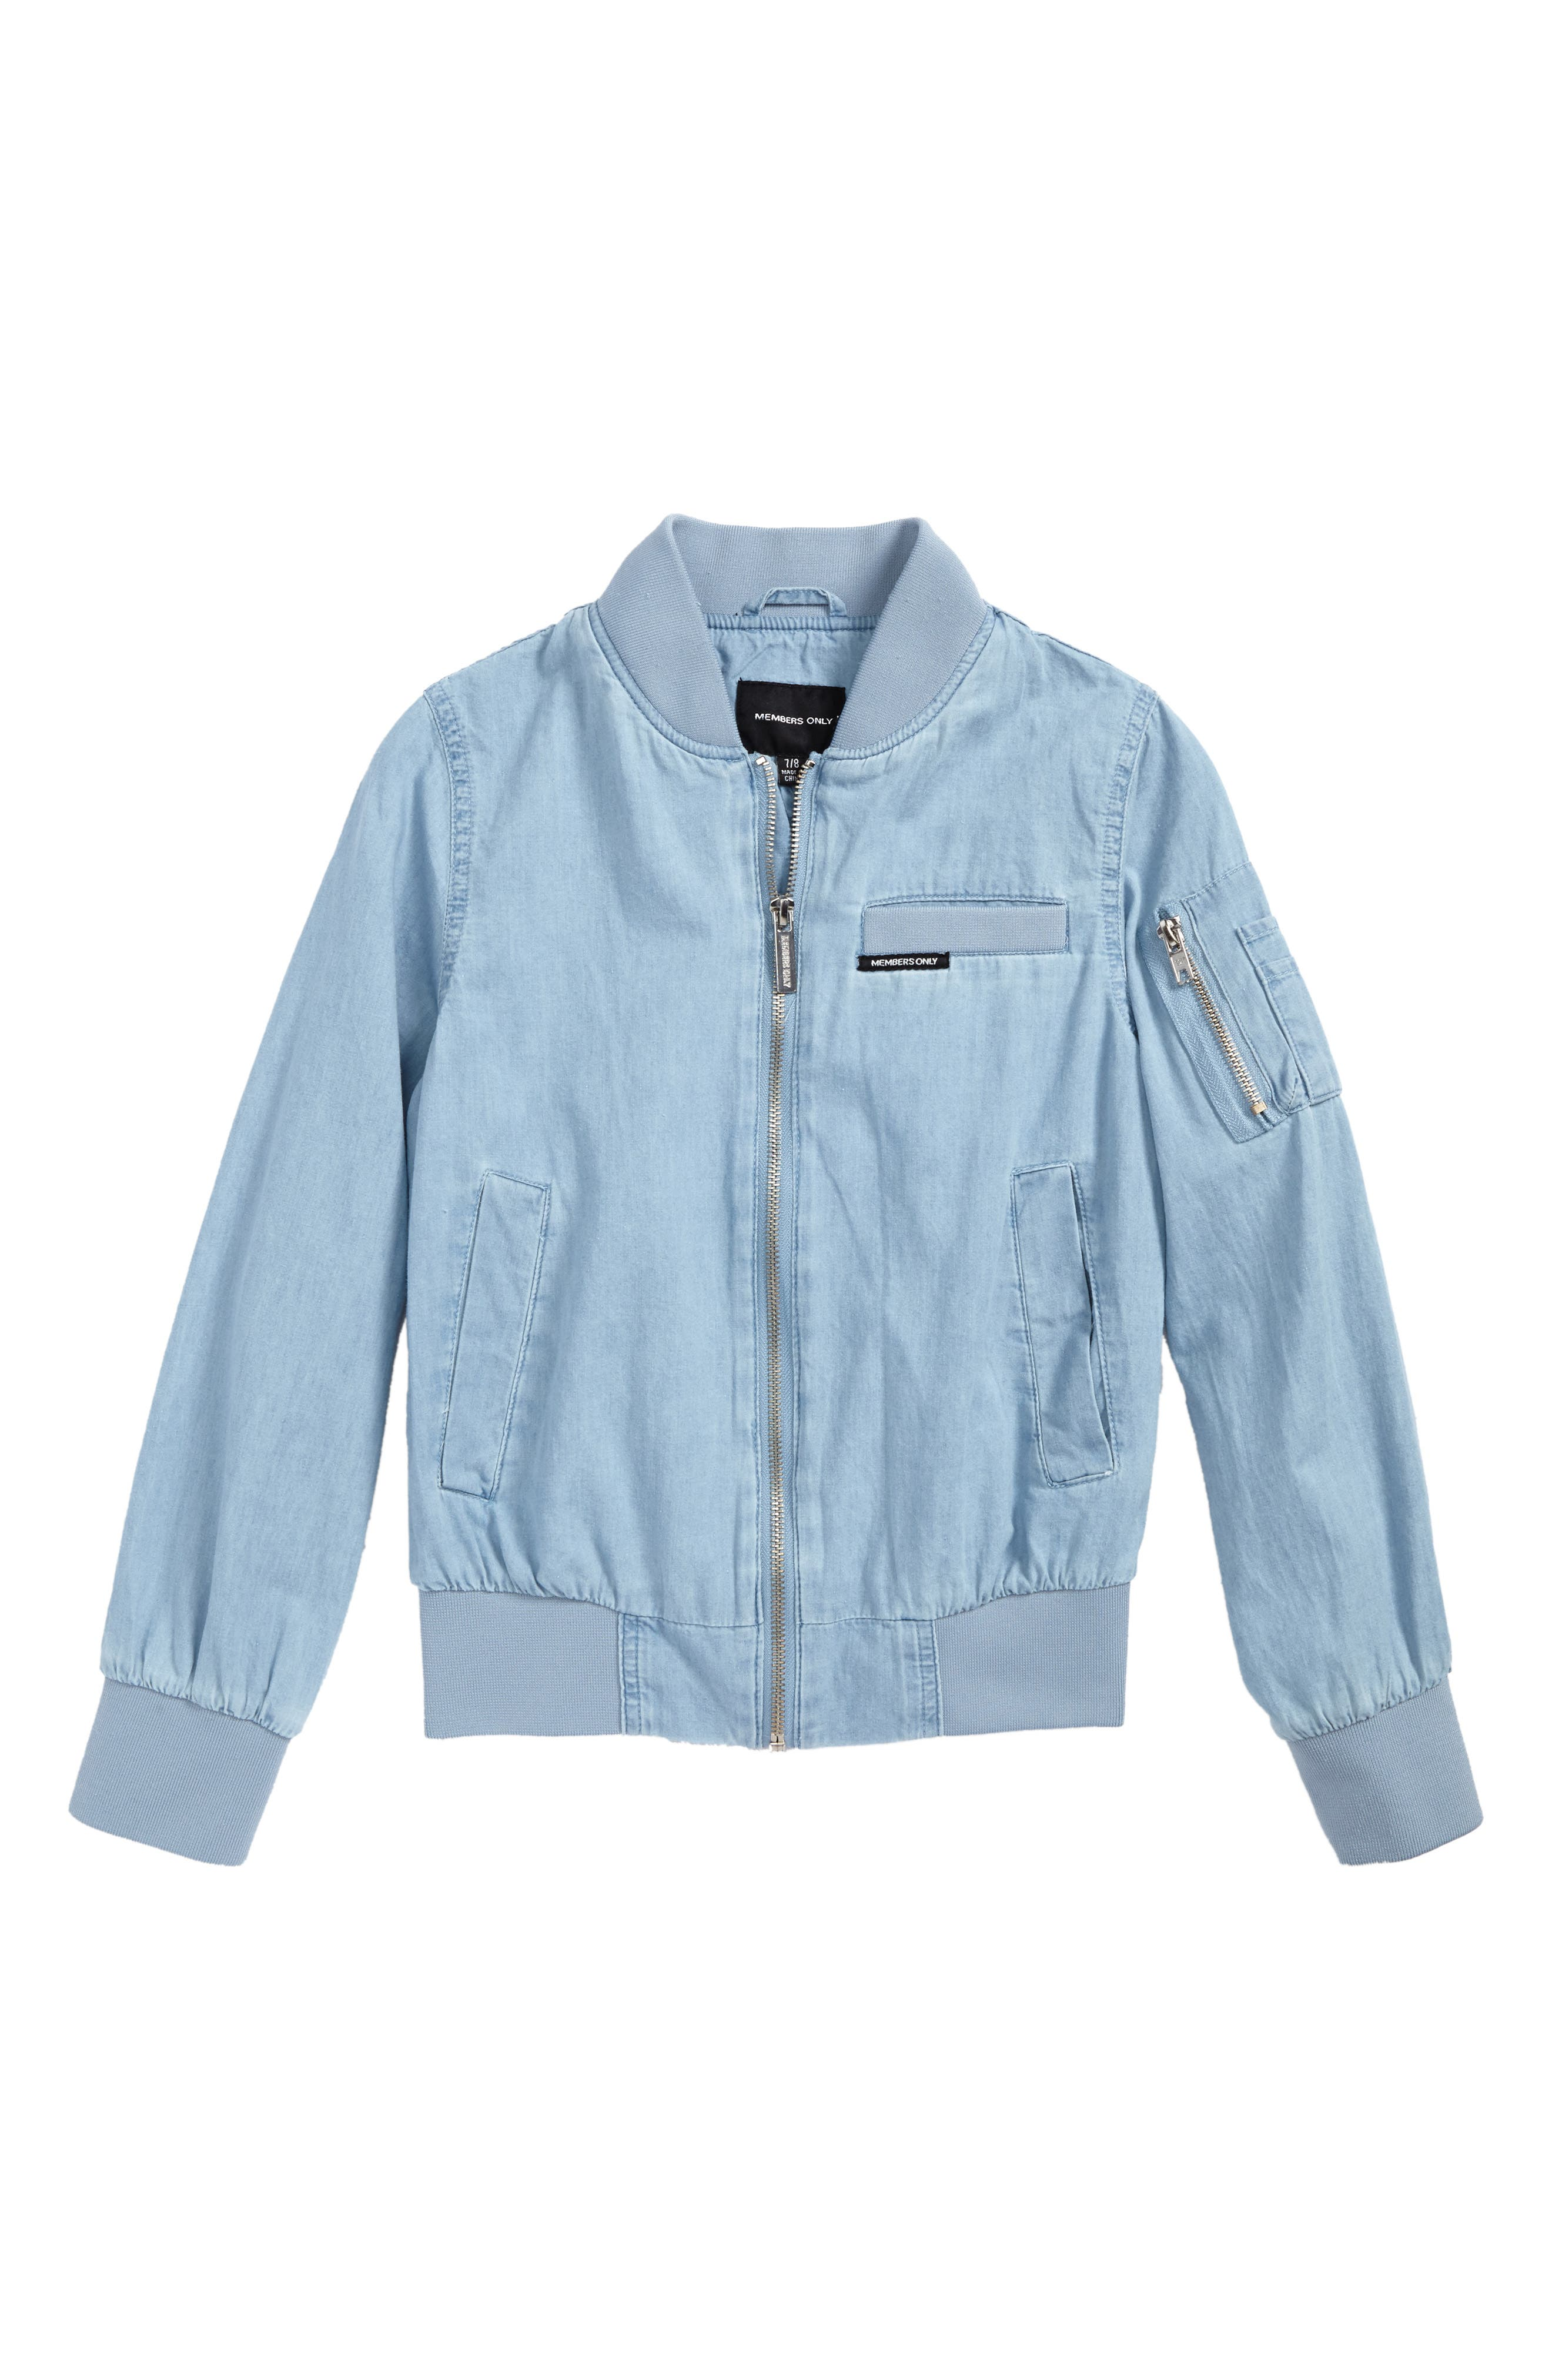 Bomber Jacket,                             Main thumbnail 2, color,